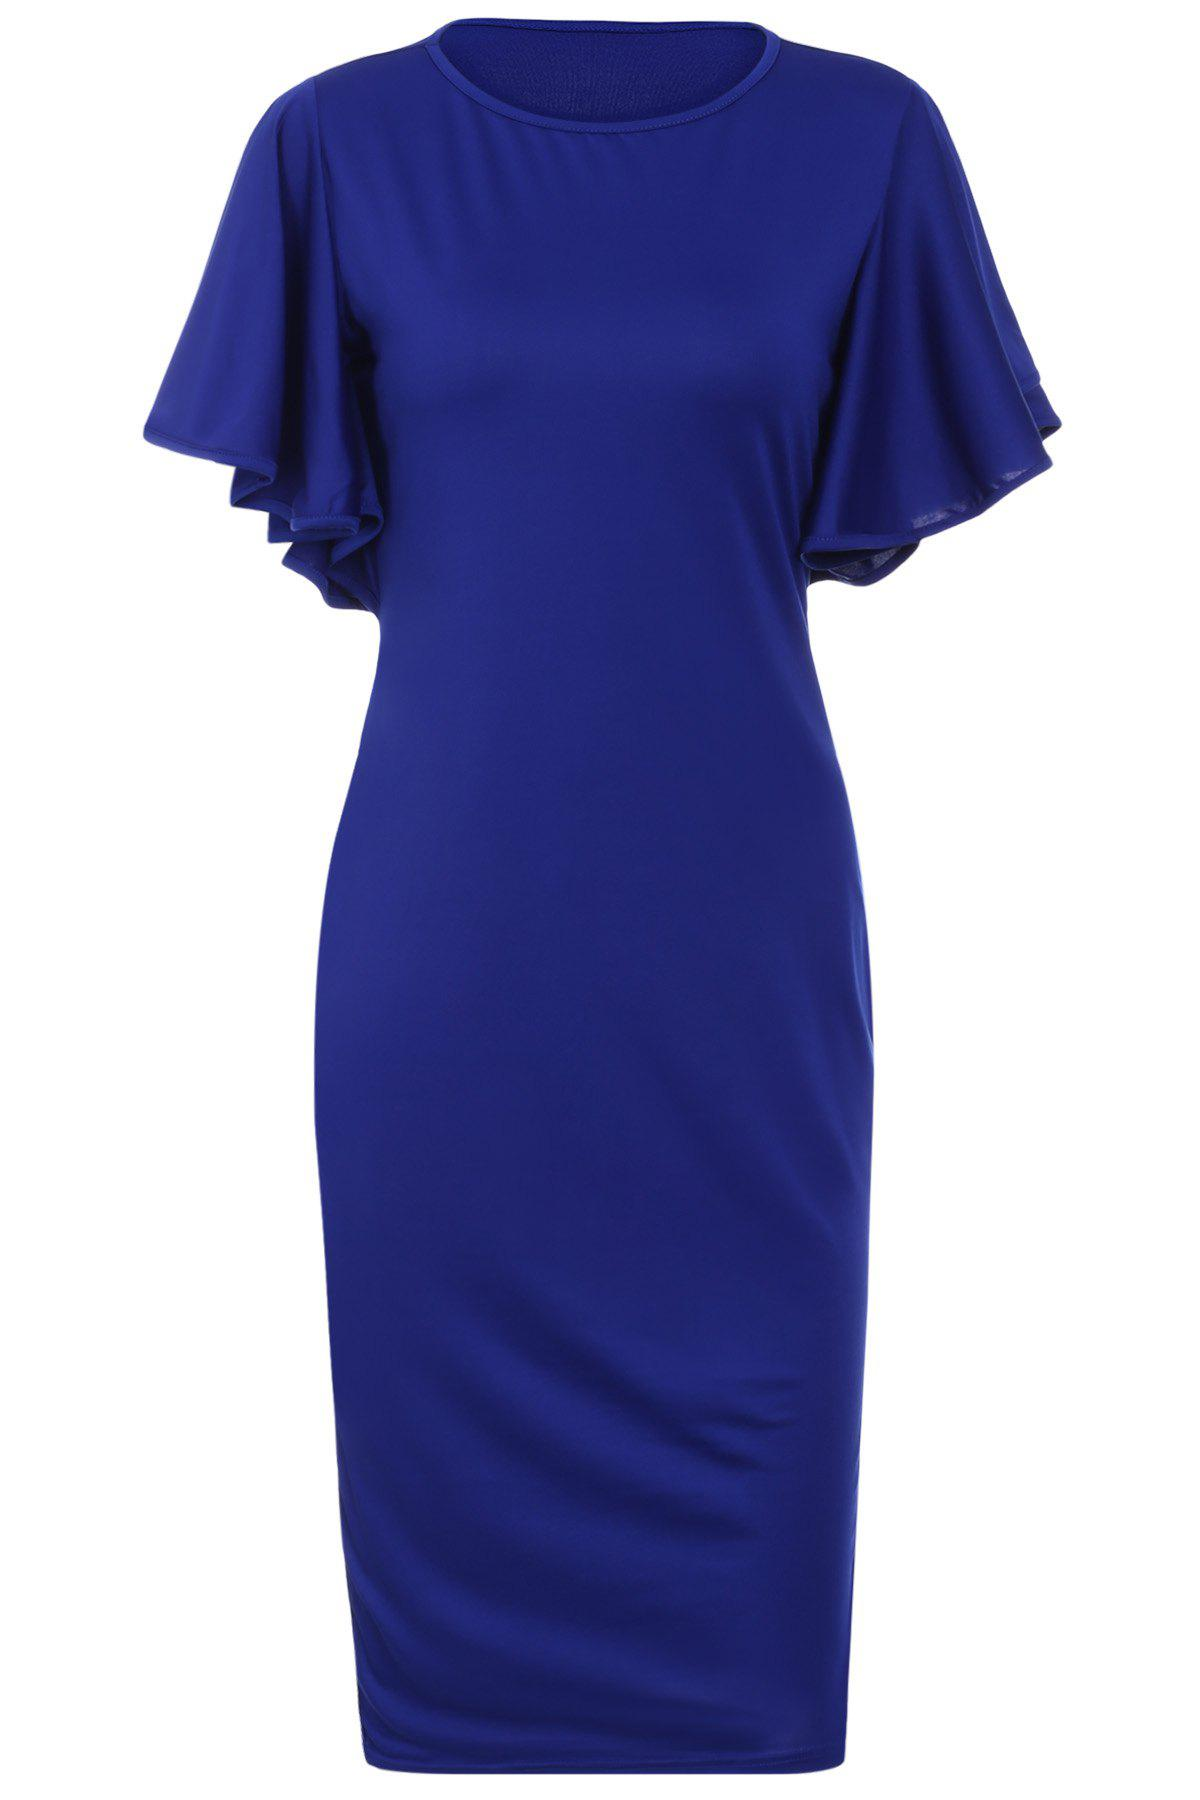 Elegant Jewel Neck Solid Color Butterfly Sleeve Bodycon Midi Dress For Women - BLUE S